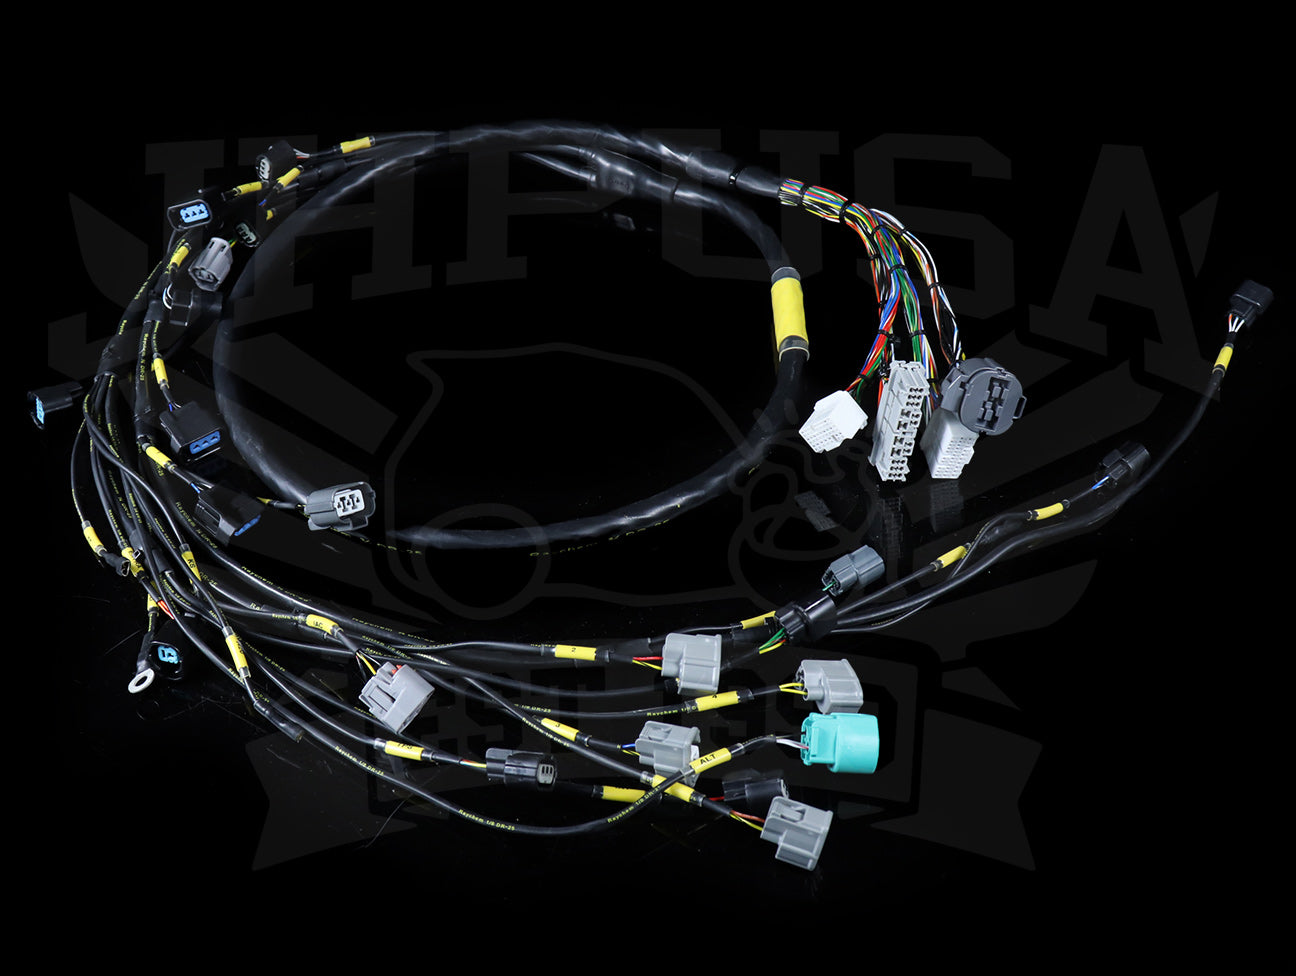 Rywire Mil-Spec Tucked K-series Harness Ver. 2 (K2) on